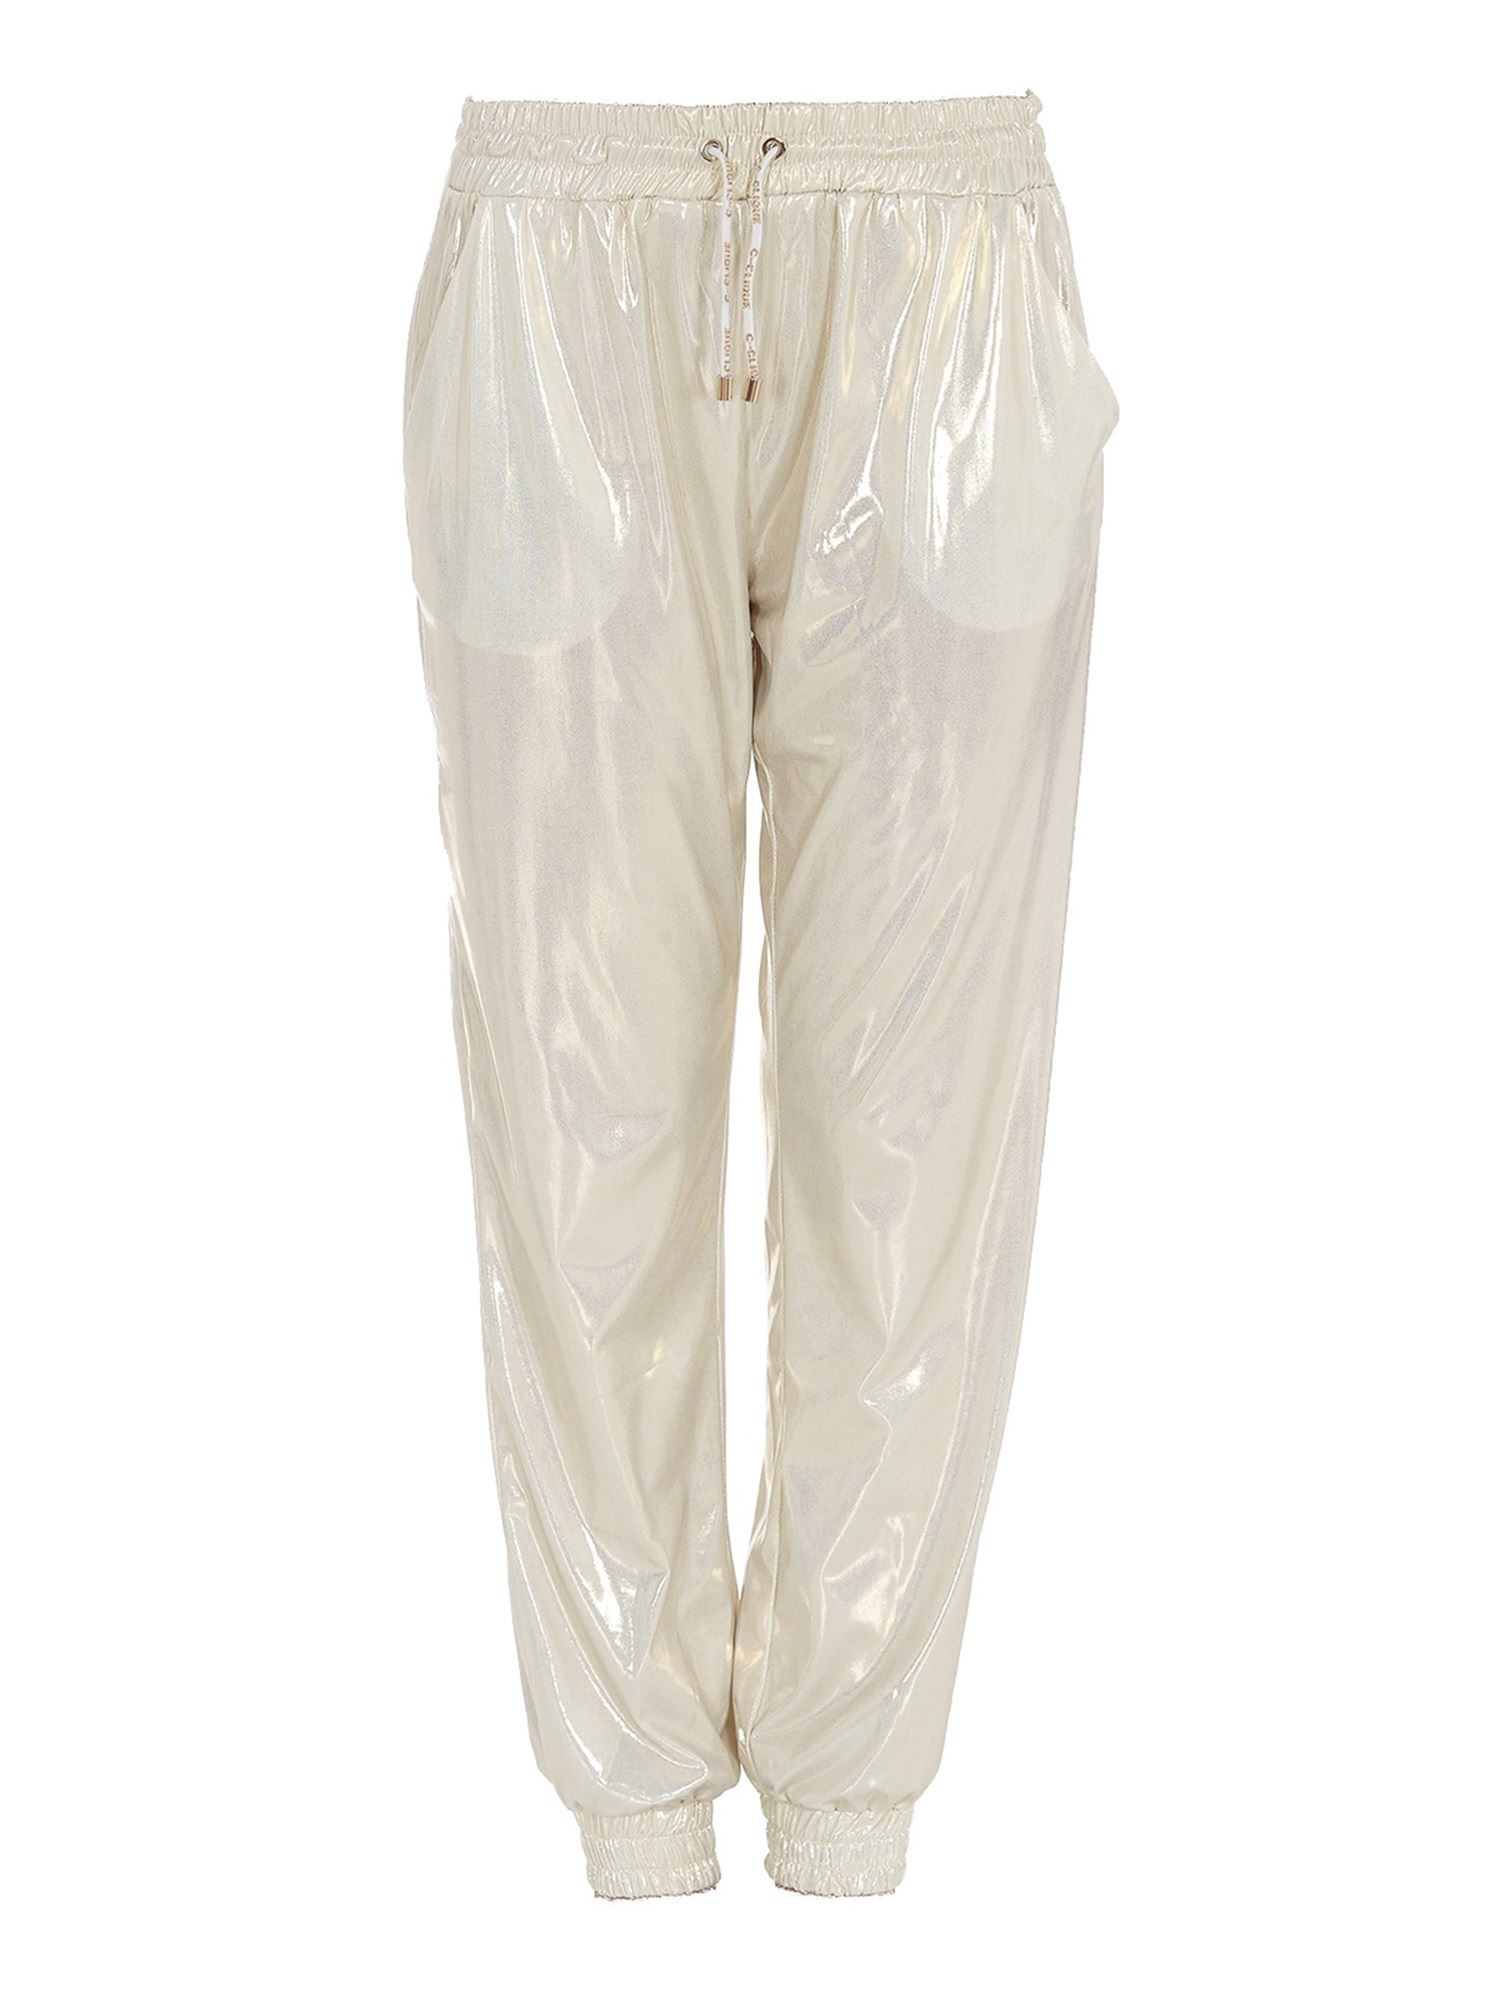 Pinko Pants PINKO LAMINATED FABRIC PANTS IN GOLD COLOR